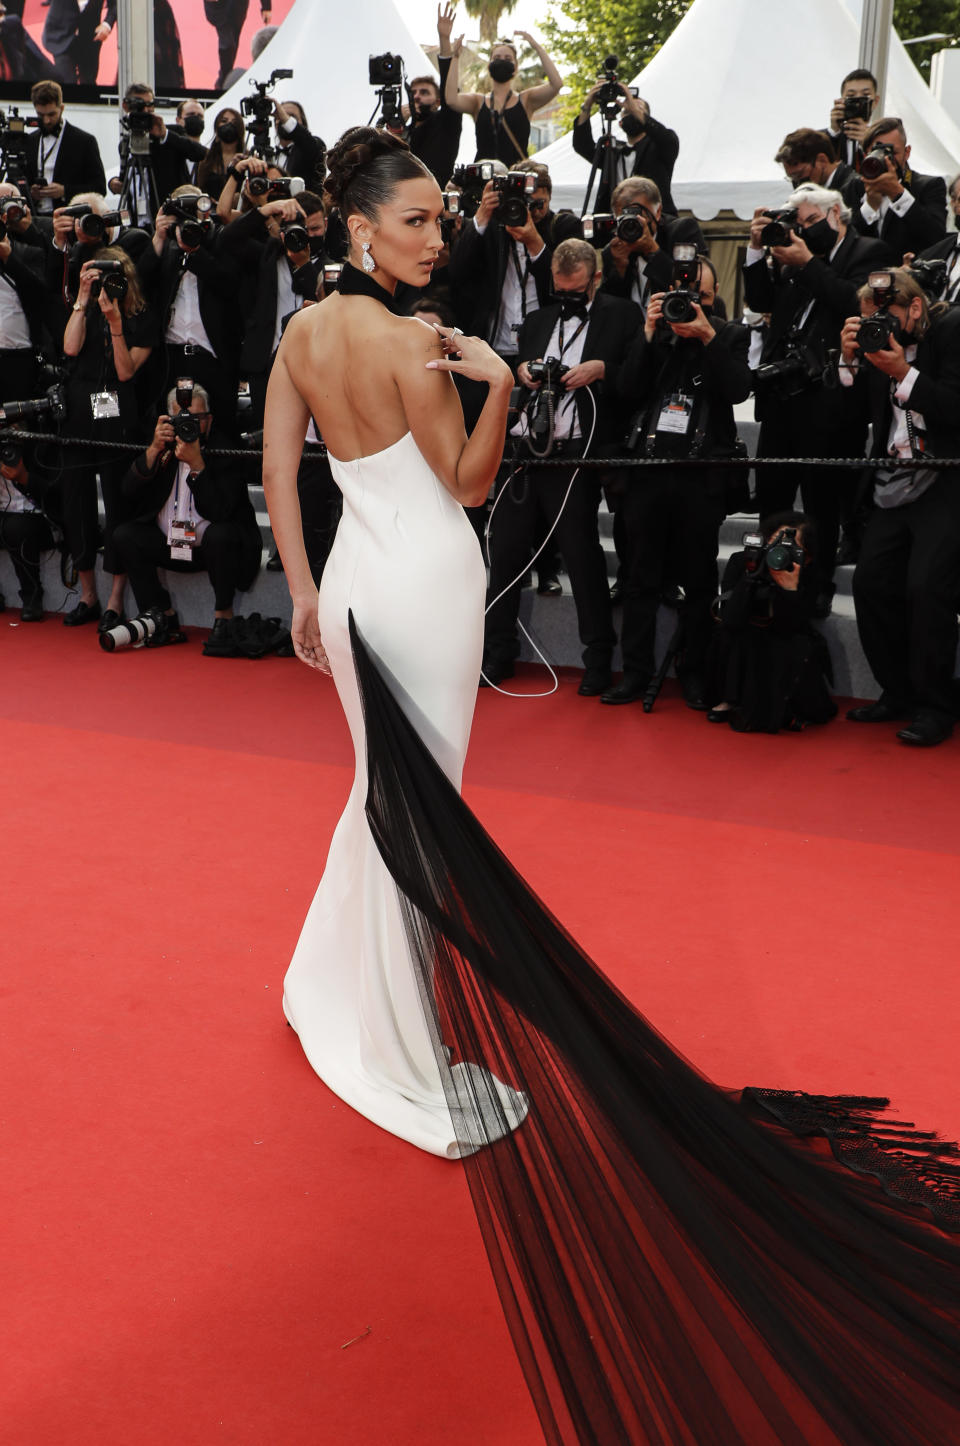 Bella Hadid poses for photographers upon arrival at the premiere of the film 'Annette' and the opening ceremony of the 74th international film festival, Cannes, southern France, Tuesday, July 6, 2021. (Photo by Vianney Le Caer/Invision/AP)